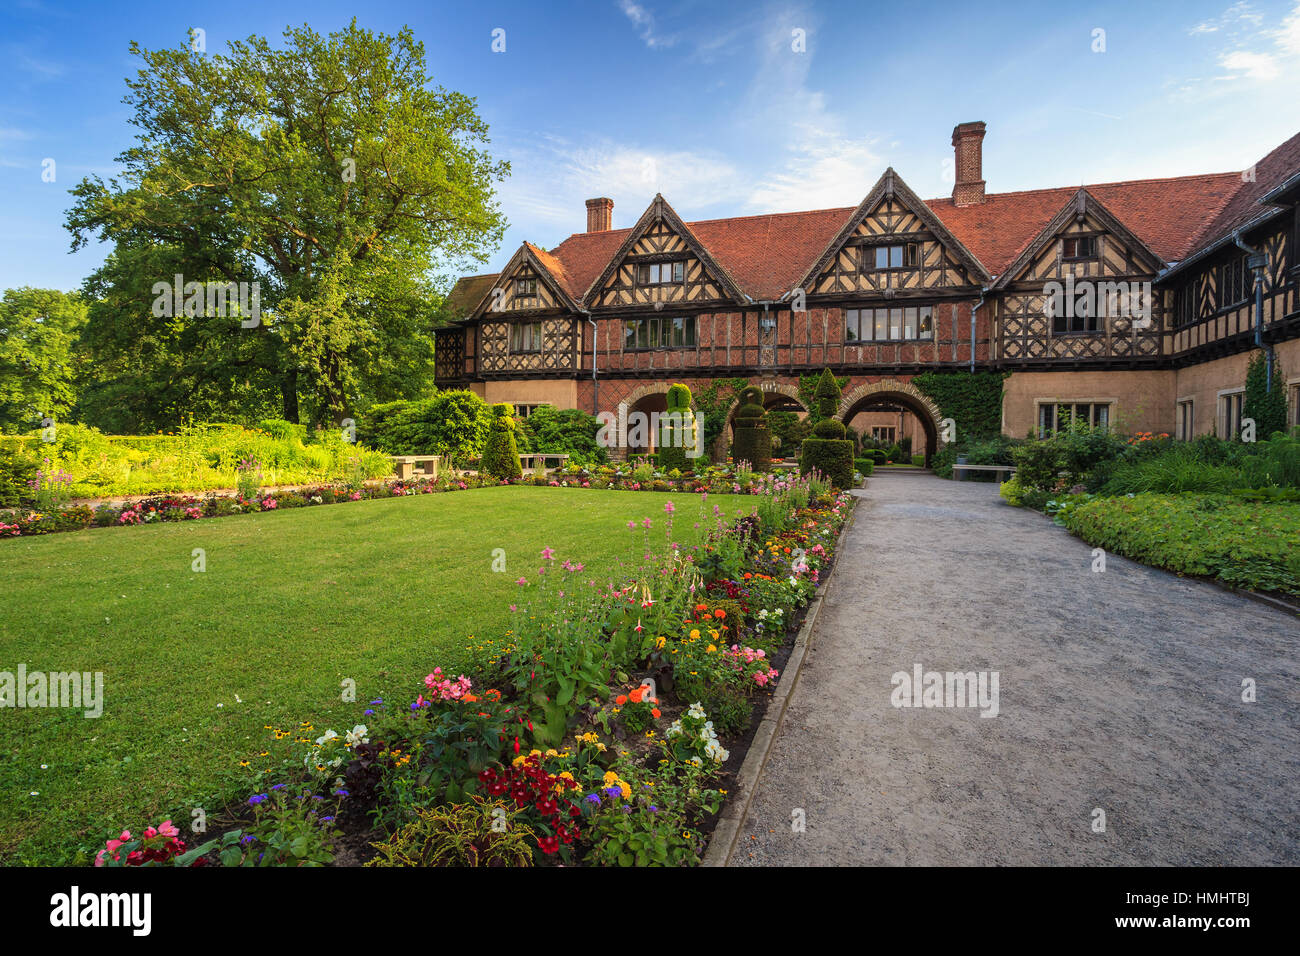 Cecilienhof, Potsdam, Allemagne Photo Stock